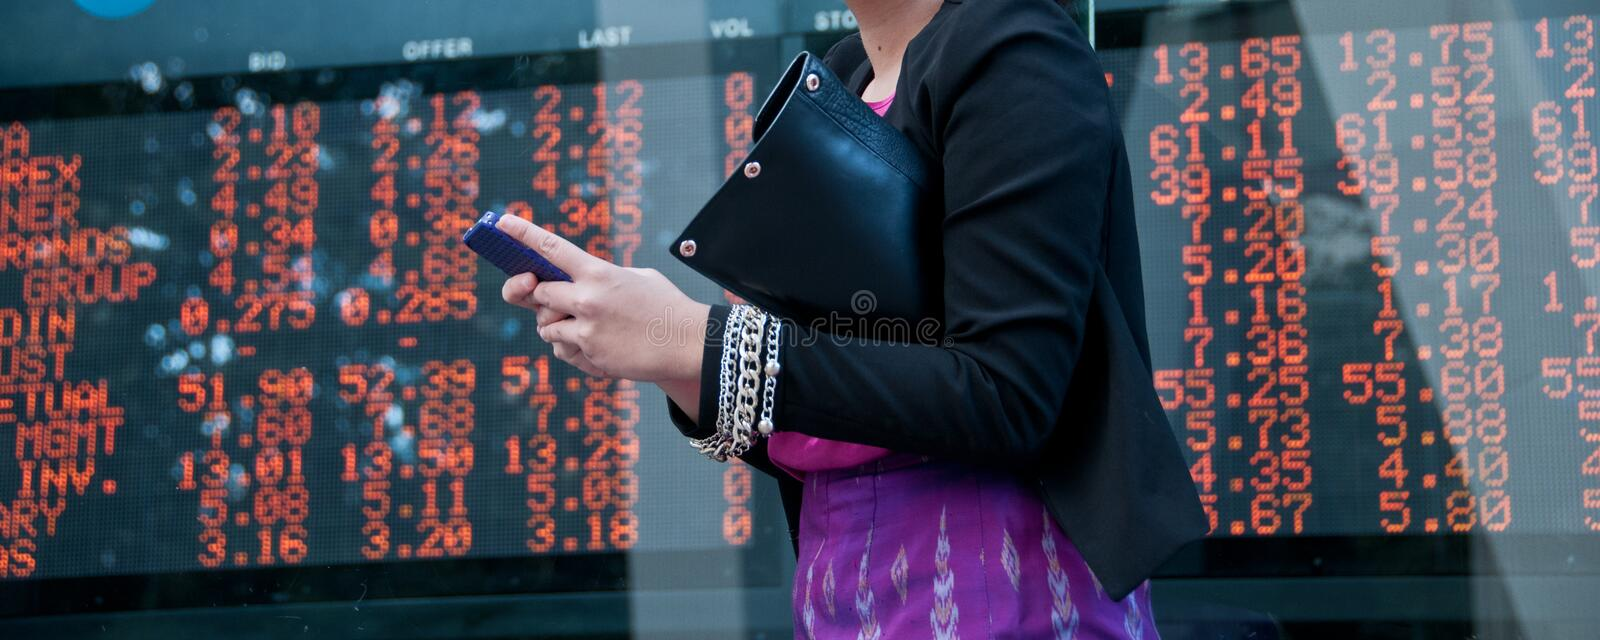 Trading stock on mobile near exchange board stock images